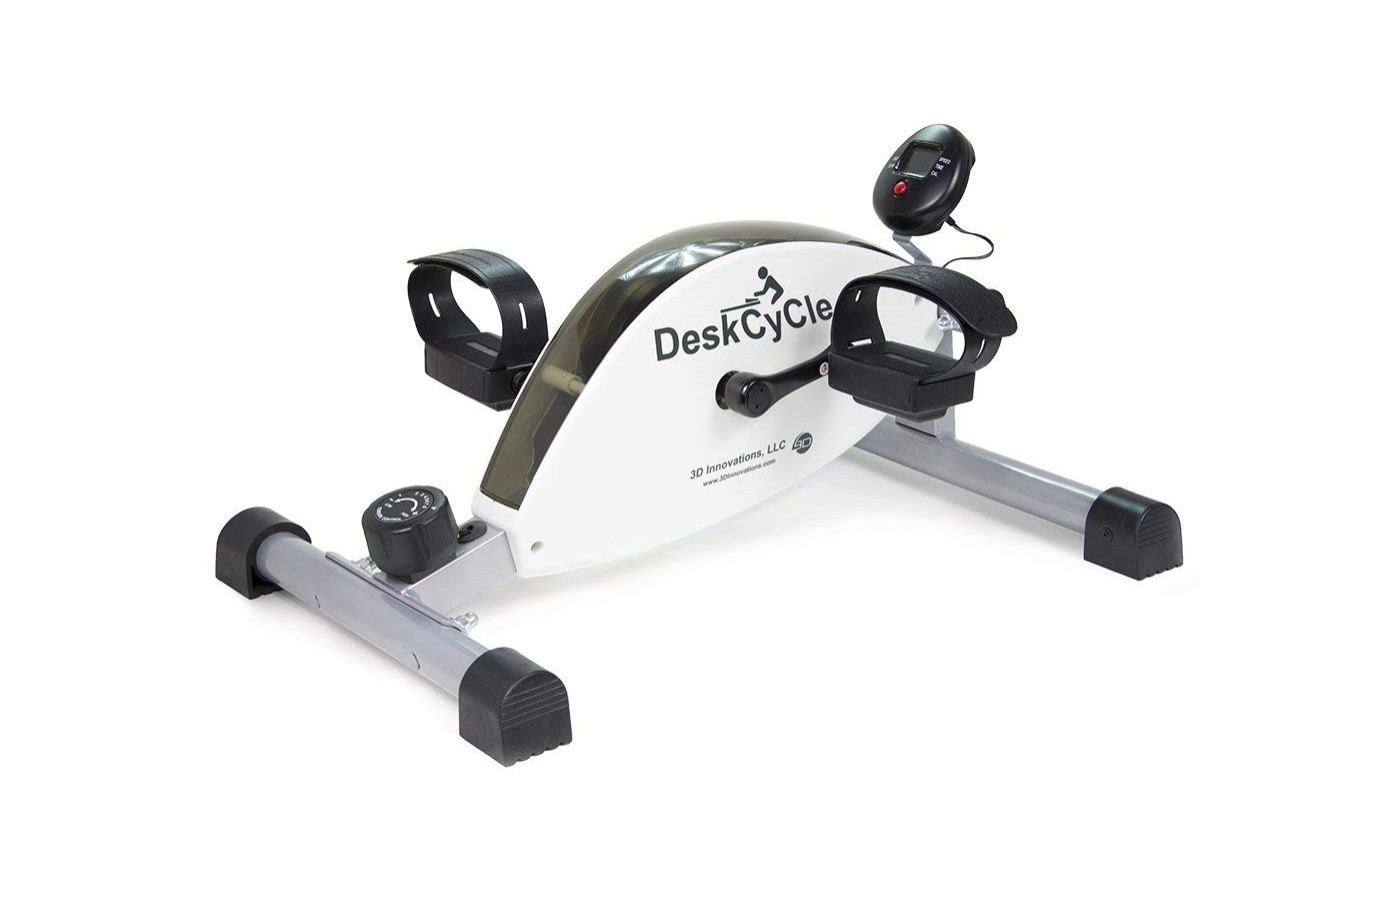 DeskCycle angle